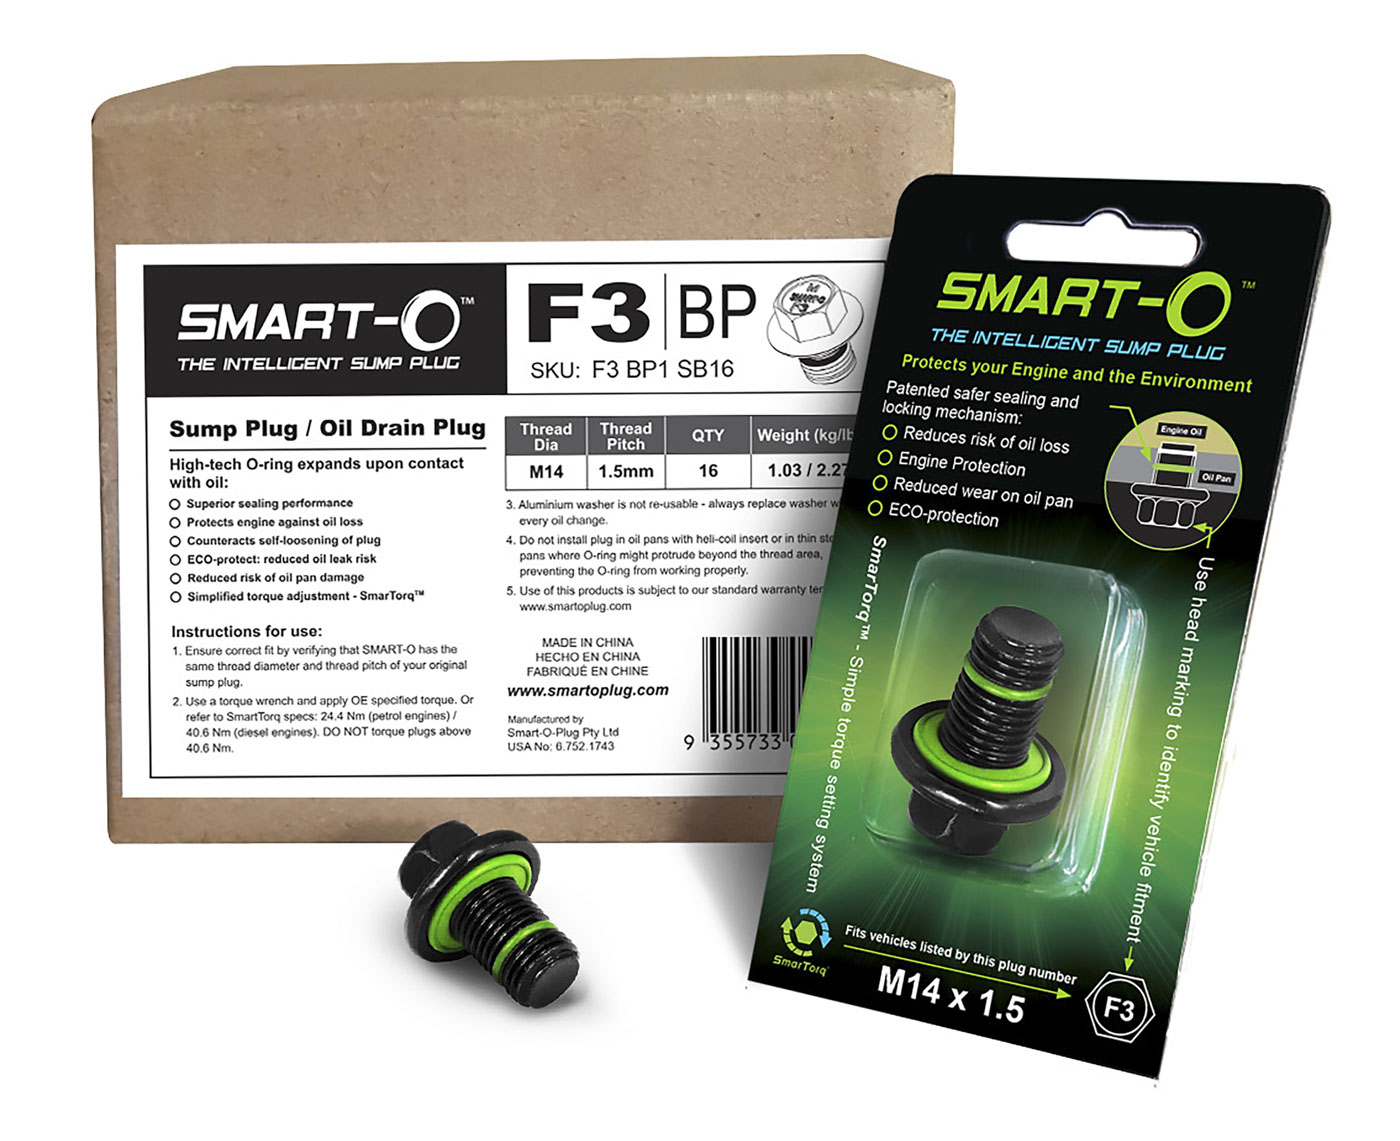 SMART-O Replenishment Box of 16 x F3BP1 Sump Plugs